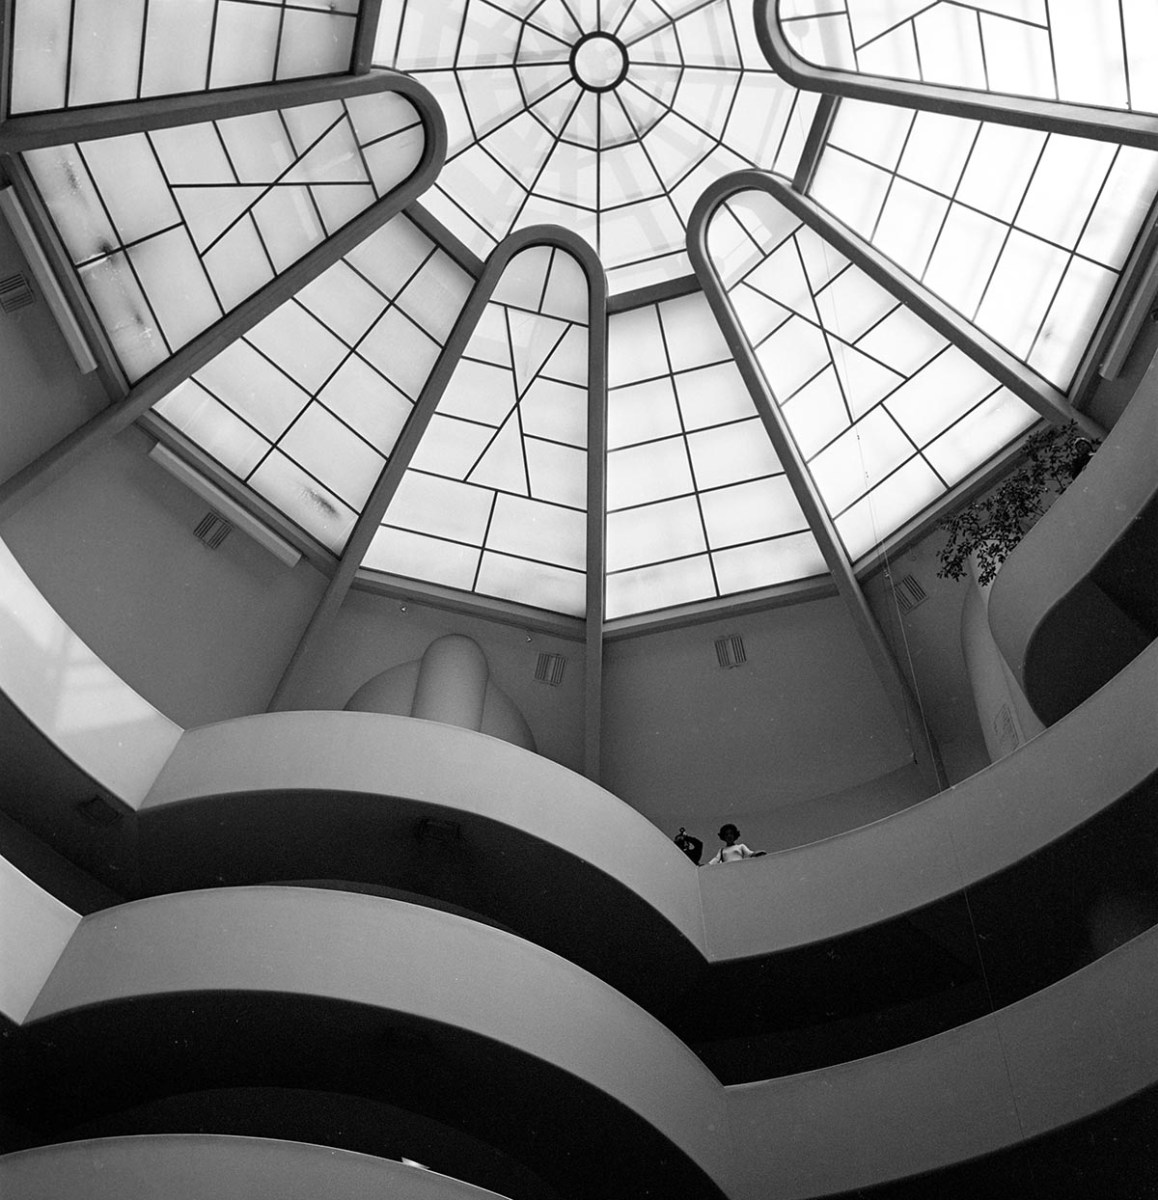 Guggenheim Museum. Ruth and Rick Meghiddo, 1971. All Rights Reserved.